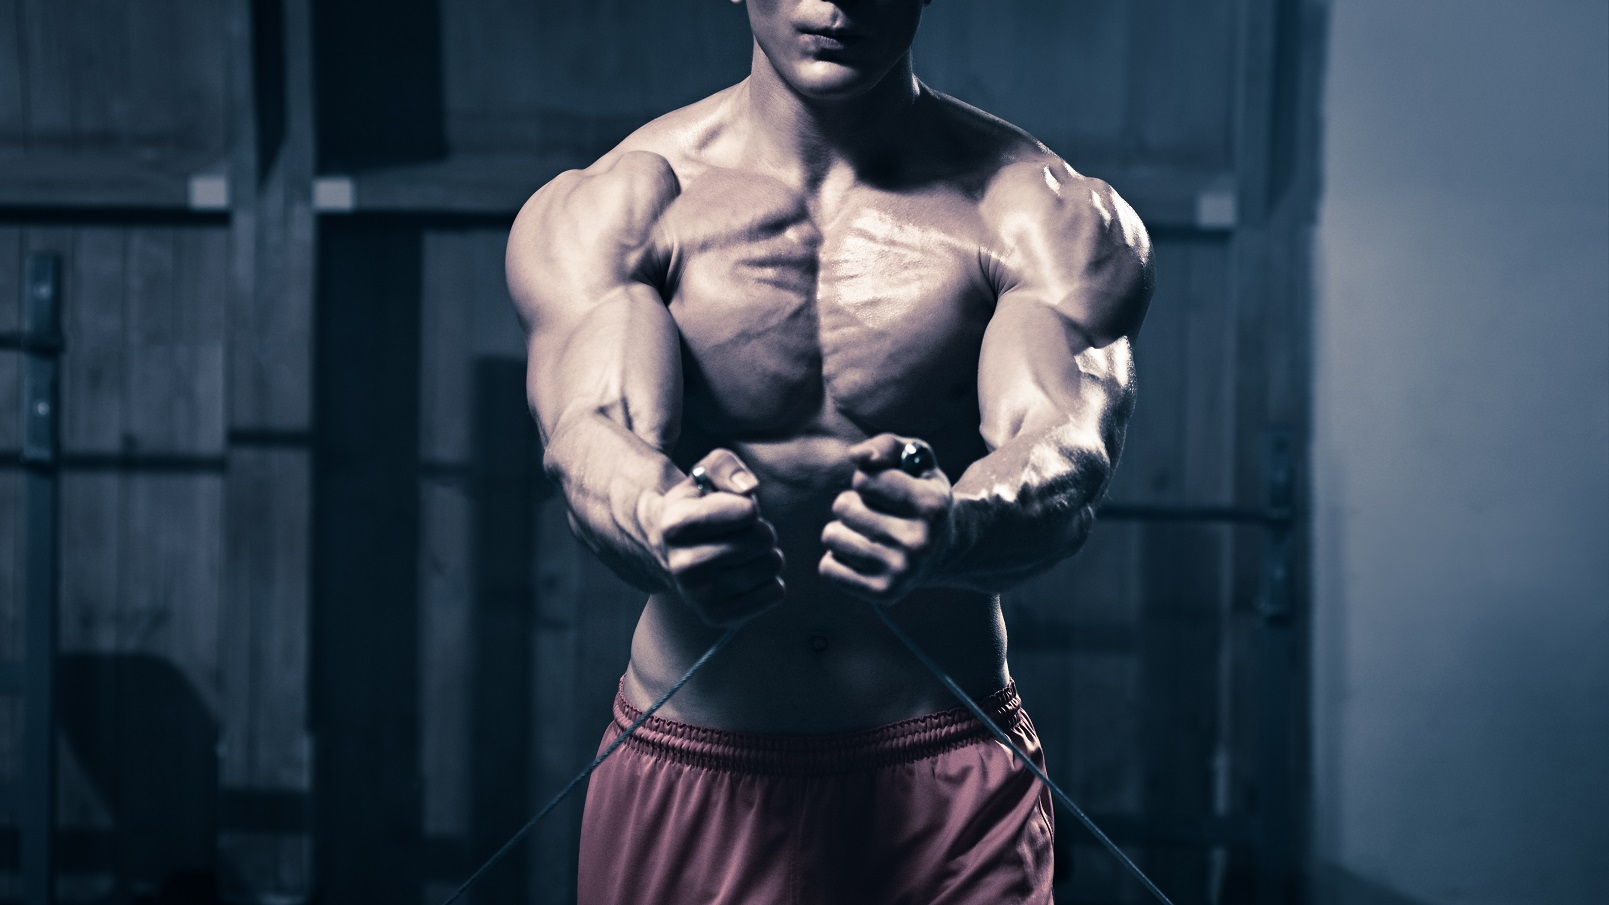 Strength training to build muscle